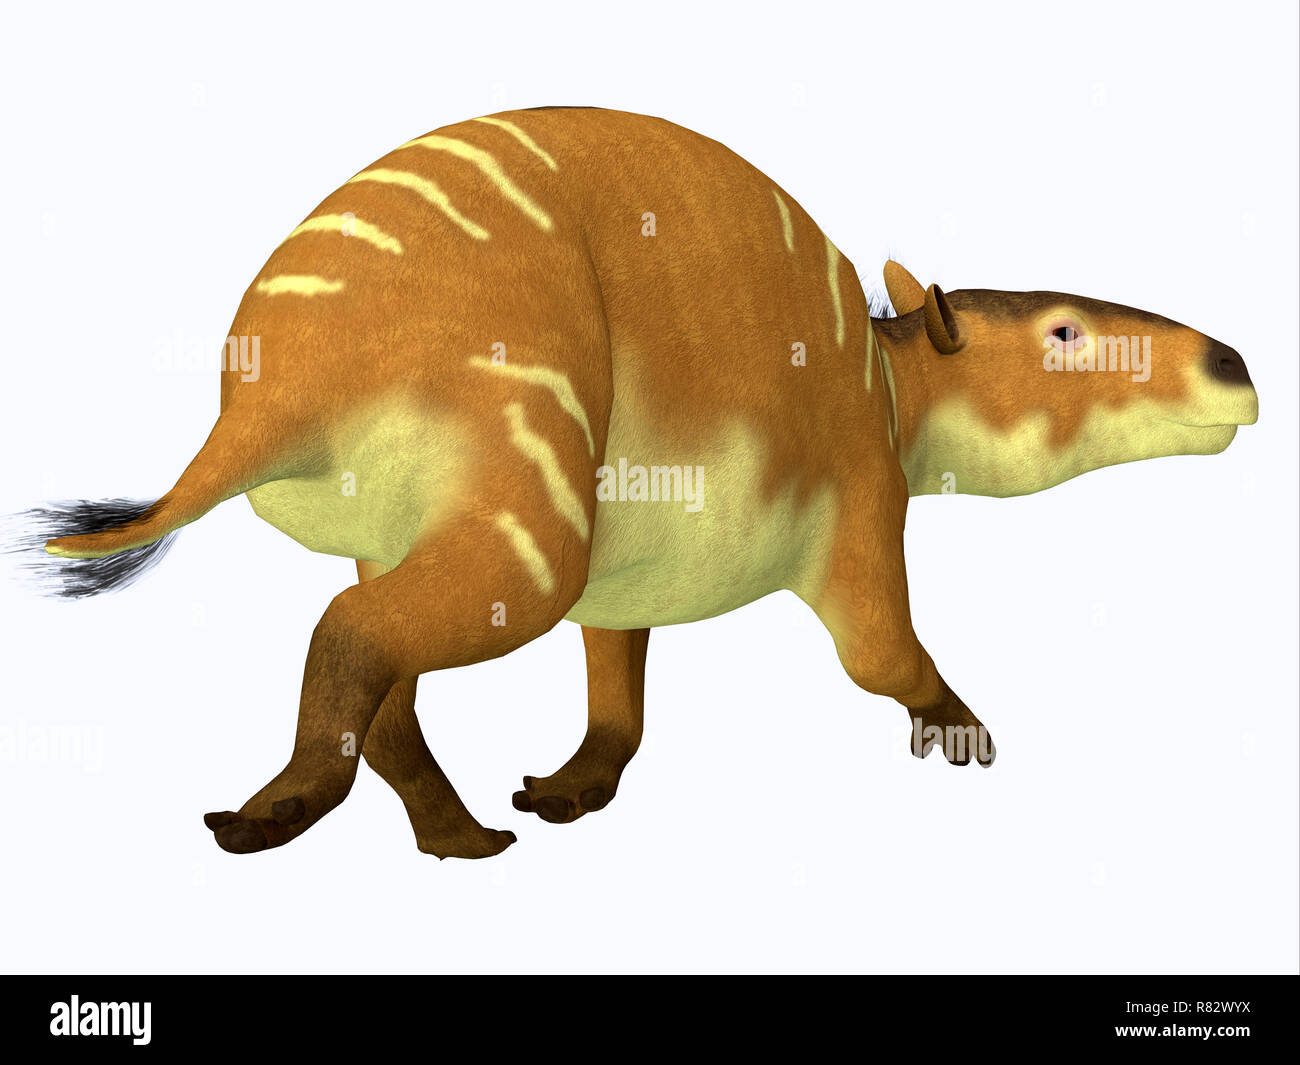 Eurohippus Horse Tail - Eurohippus was an early horse that lived in the Middle Eocene Period of Europe and Asia. - Stock Image